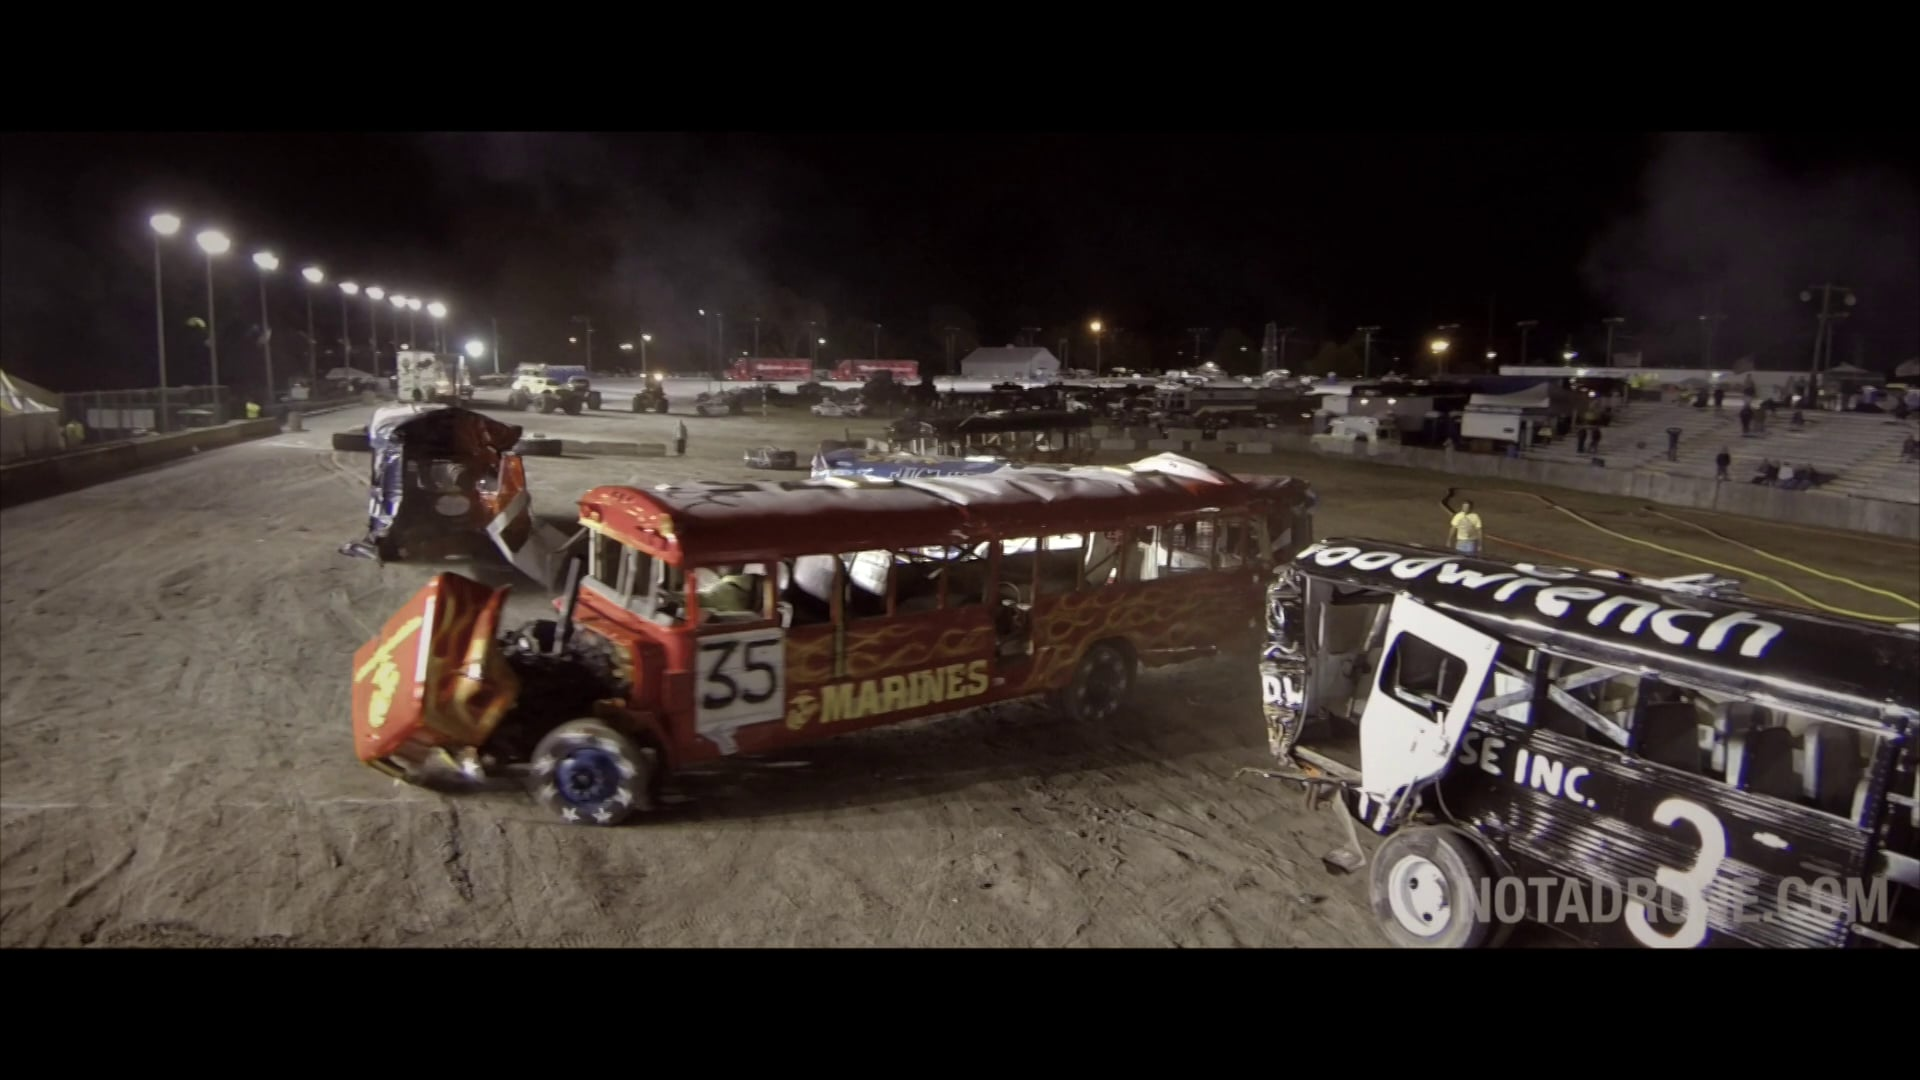 Epic School Bus Demolition Derby Aerial Drone video, Erie County Fair, NY CT MA NJ Aerial Photography and Video